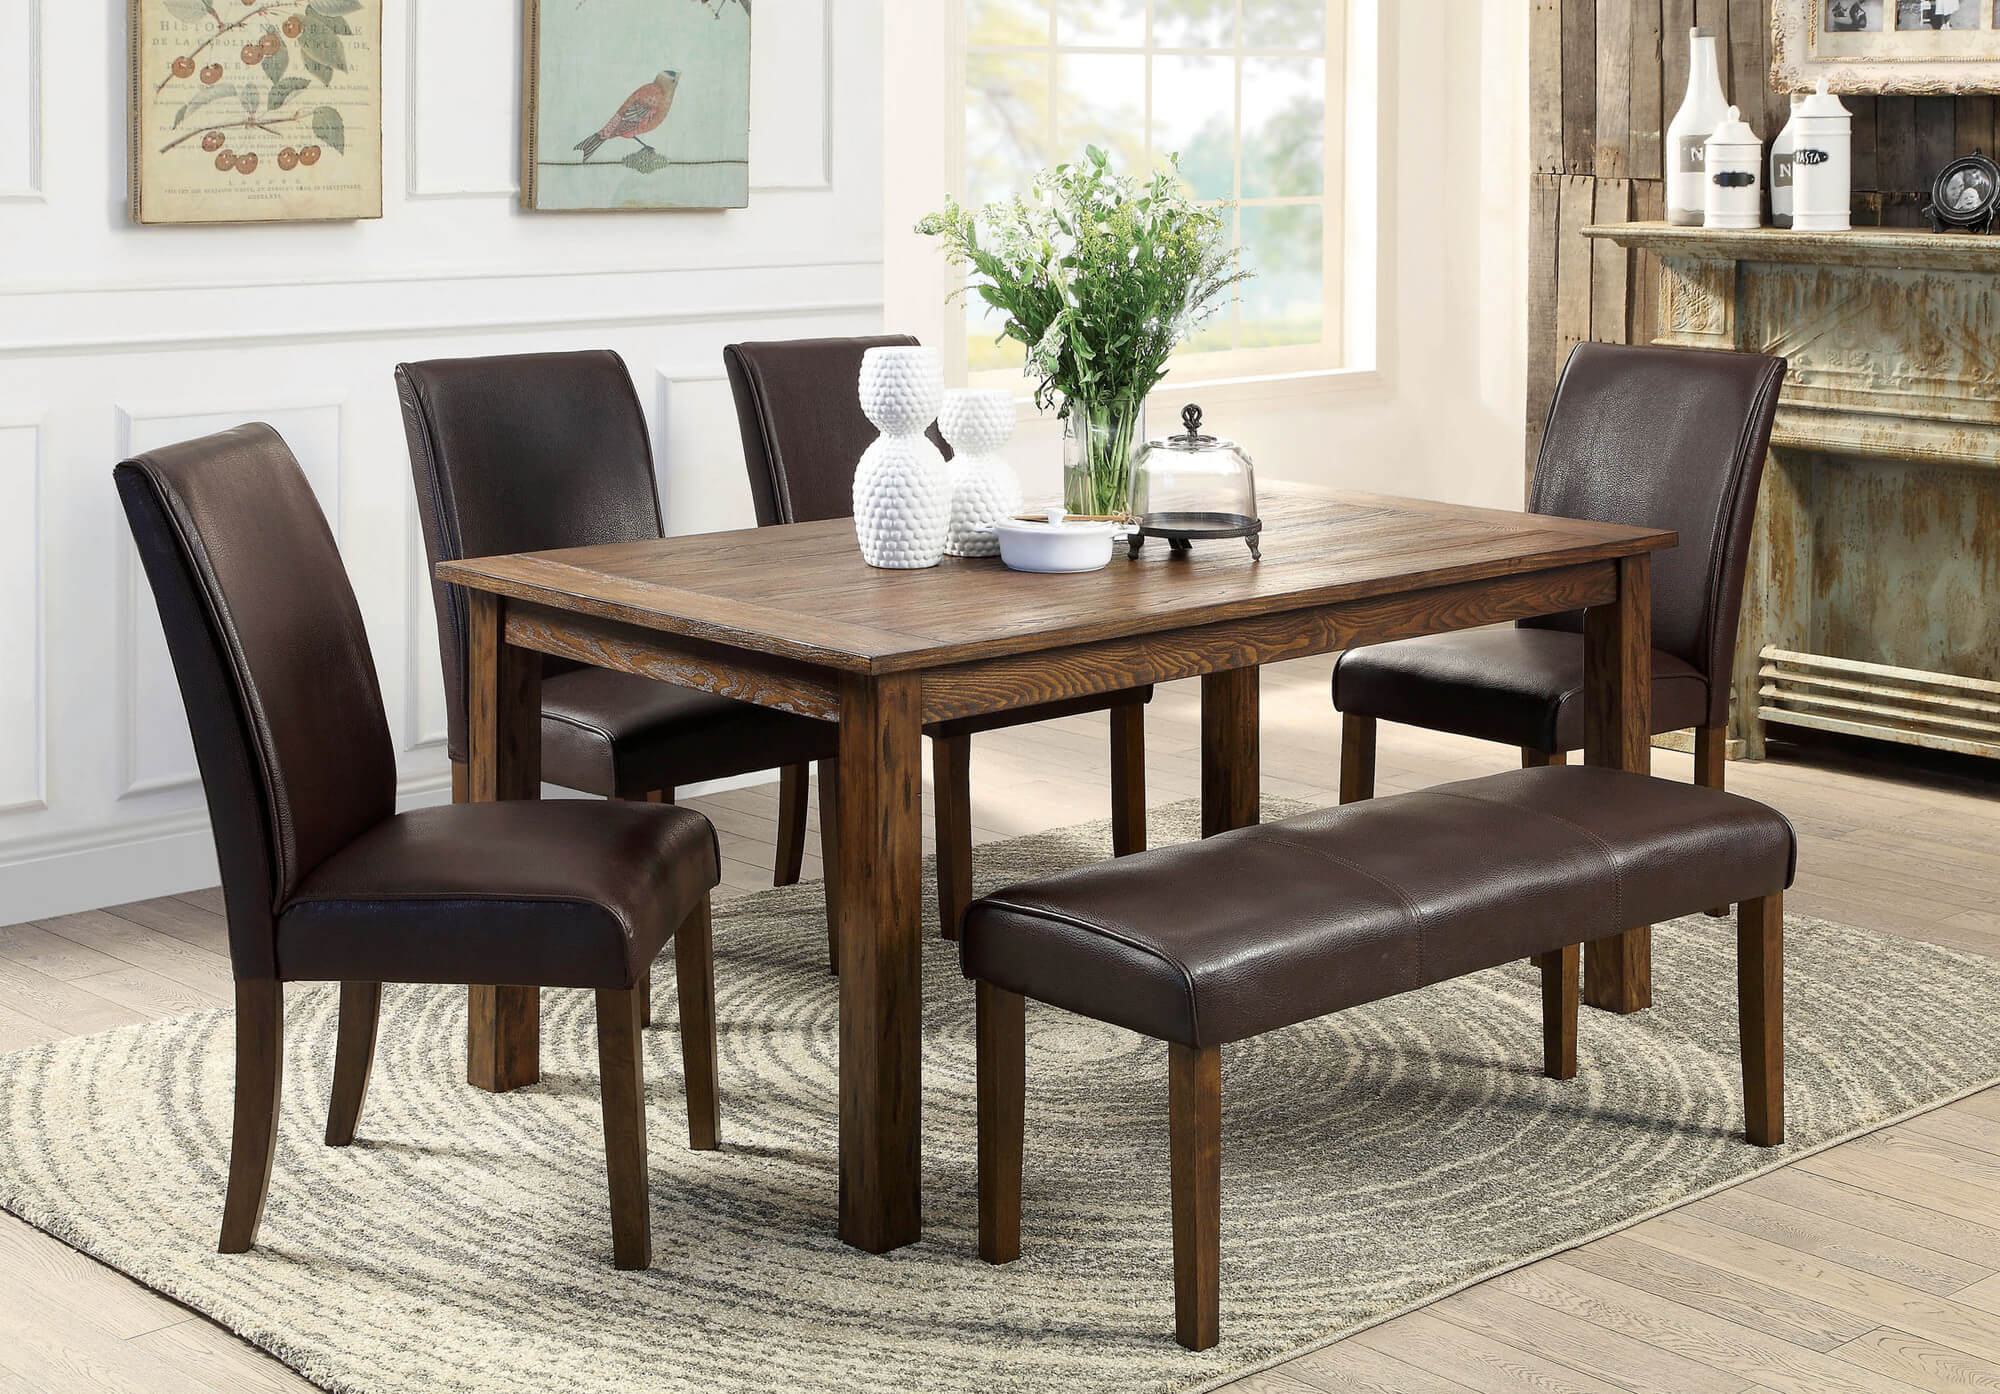 Hereu0027s A Rustic Rectangle Dining Table With Fully Cushioned Chairs And  Bench. This Look Works